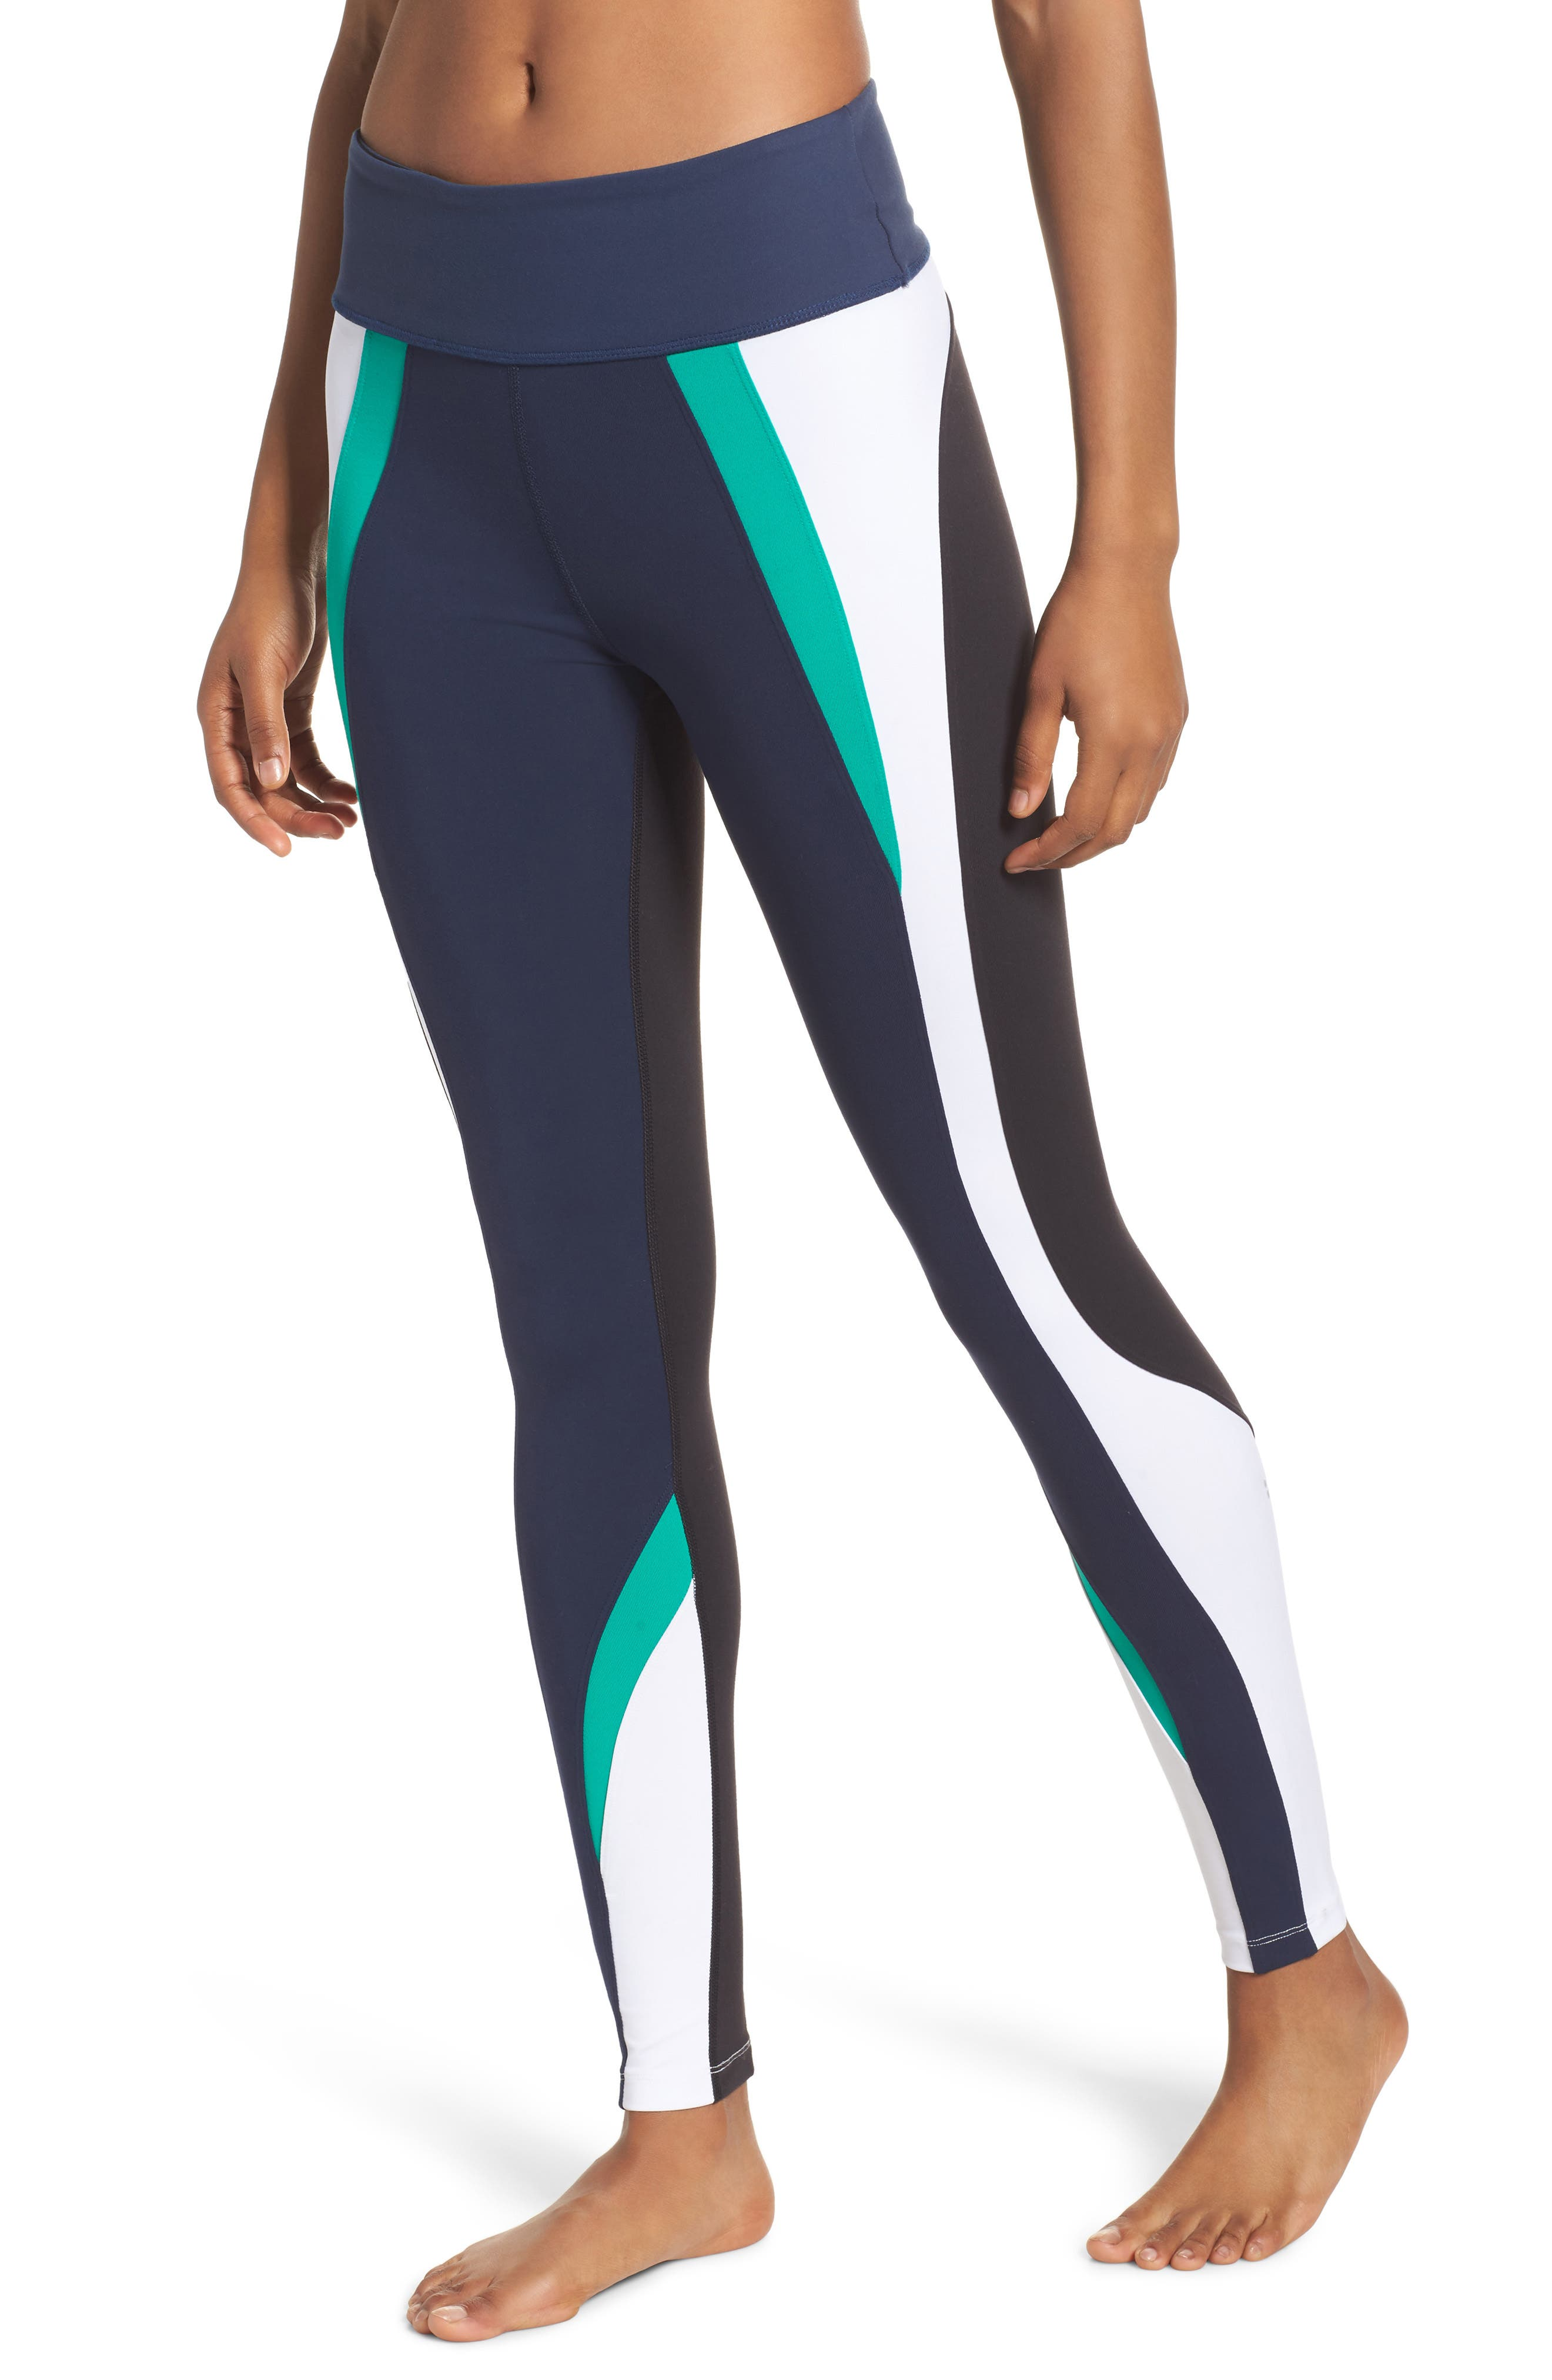 Force Ankle Tights,                         Main,                         color, Navy/ Kelly/ White/ Black